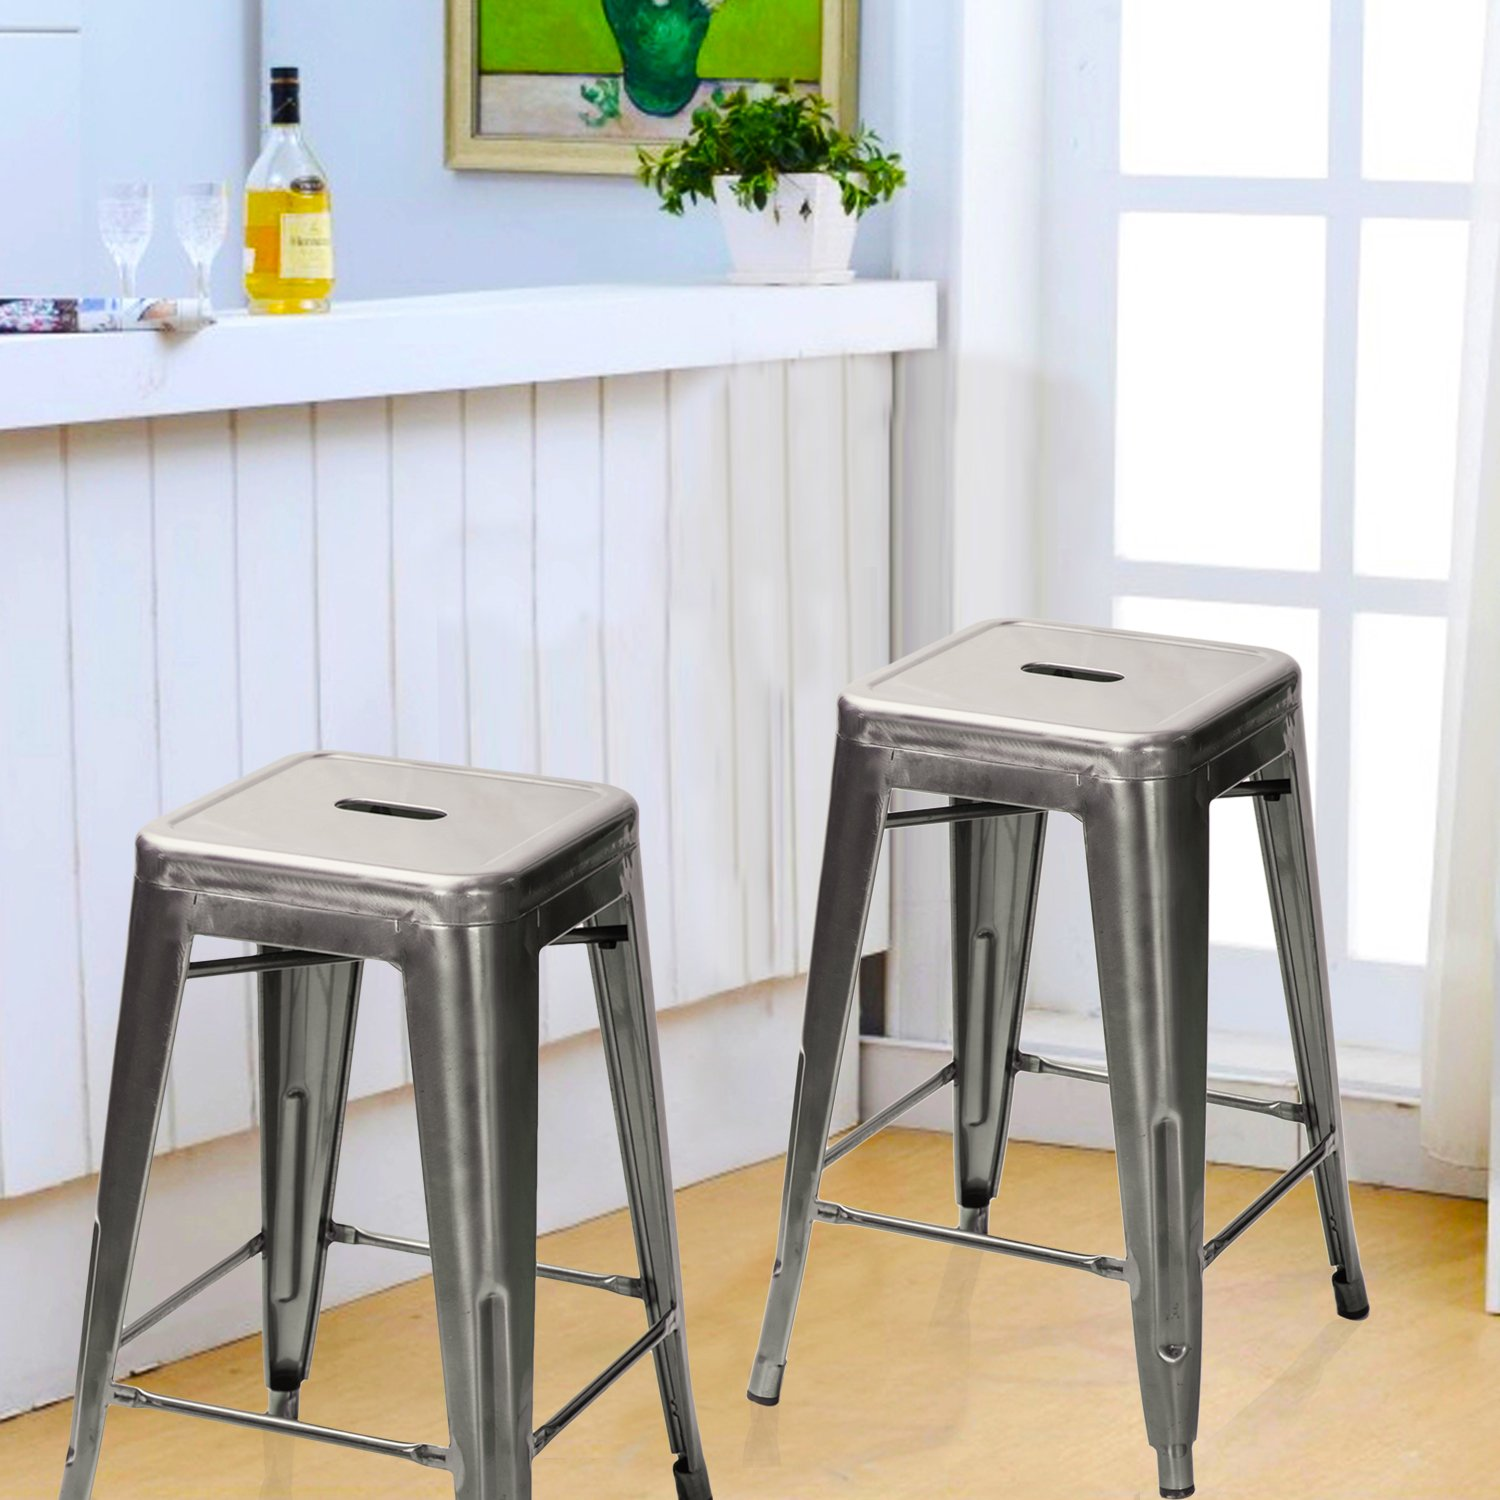 Counter Stools With Arms Part - 20: Amazon.com